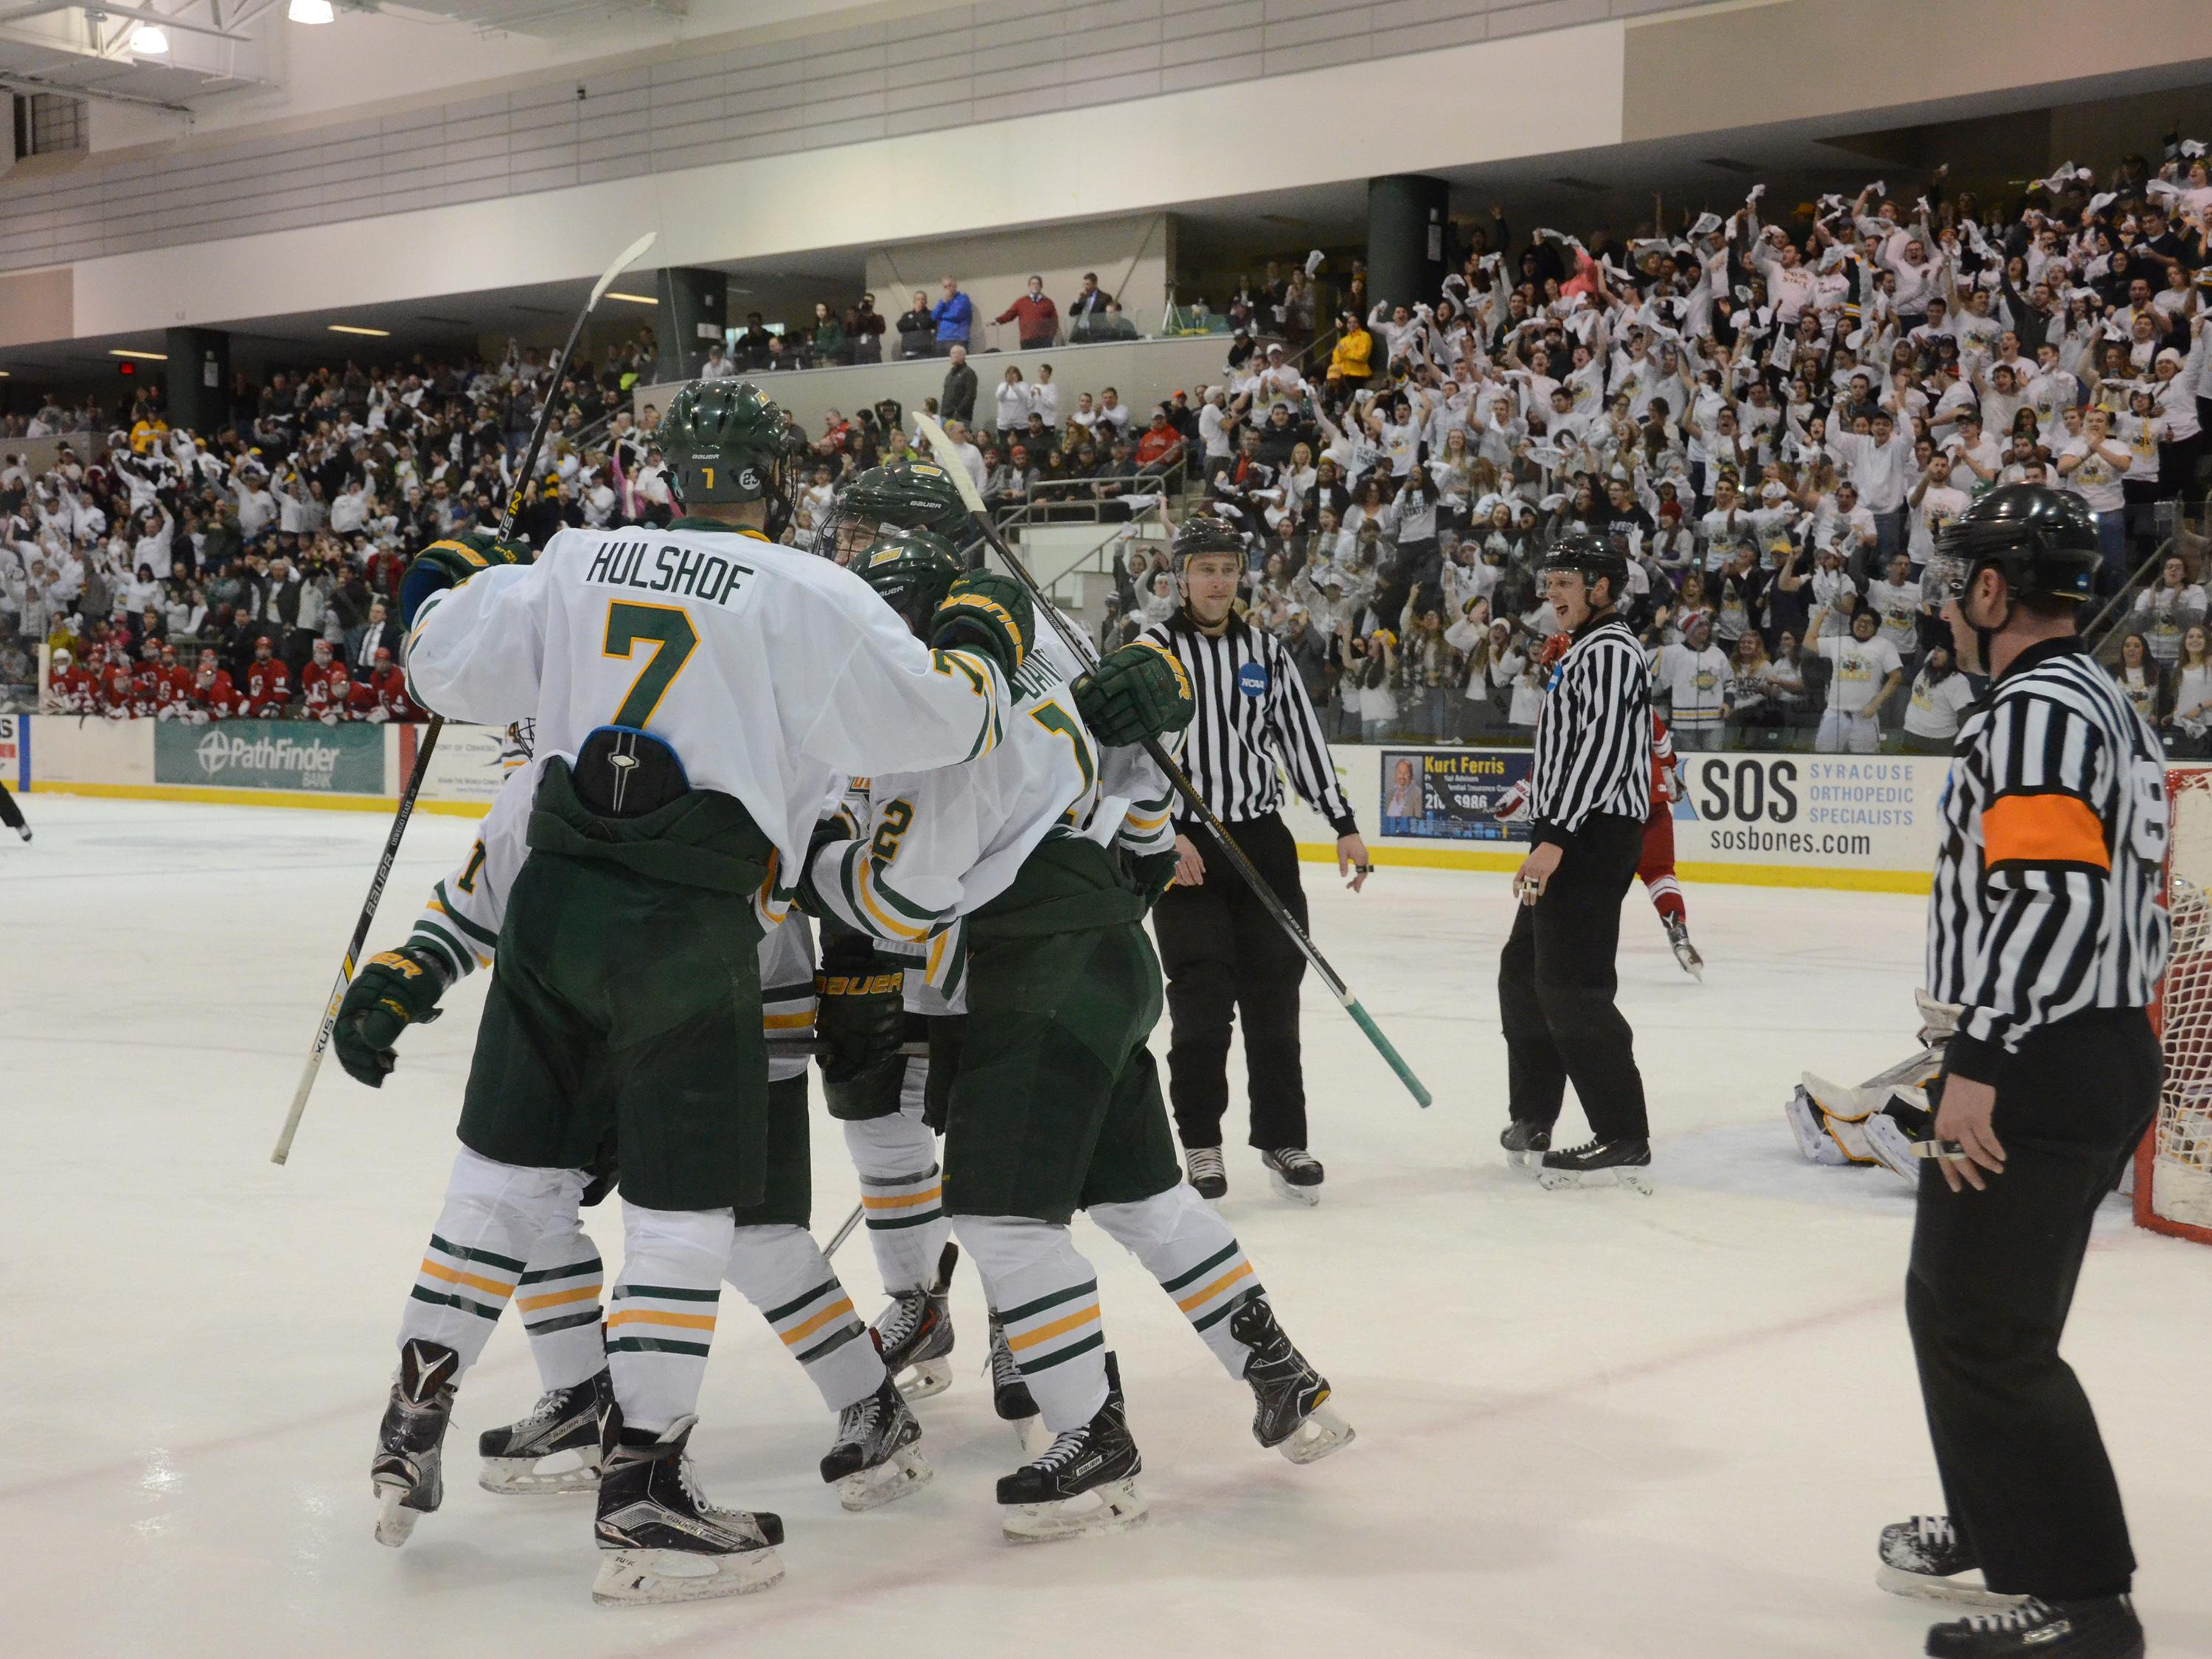 Men's hockey players celebrate goal